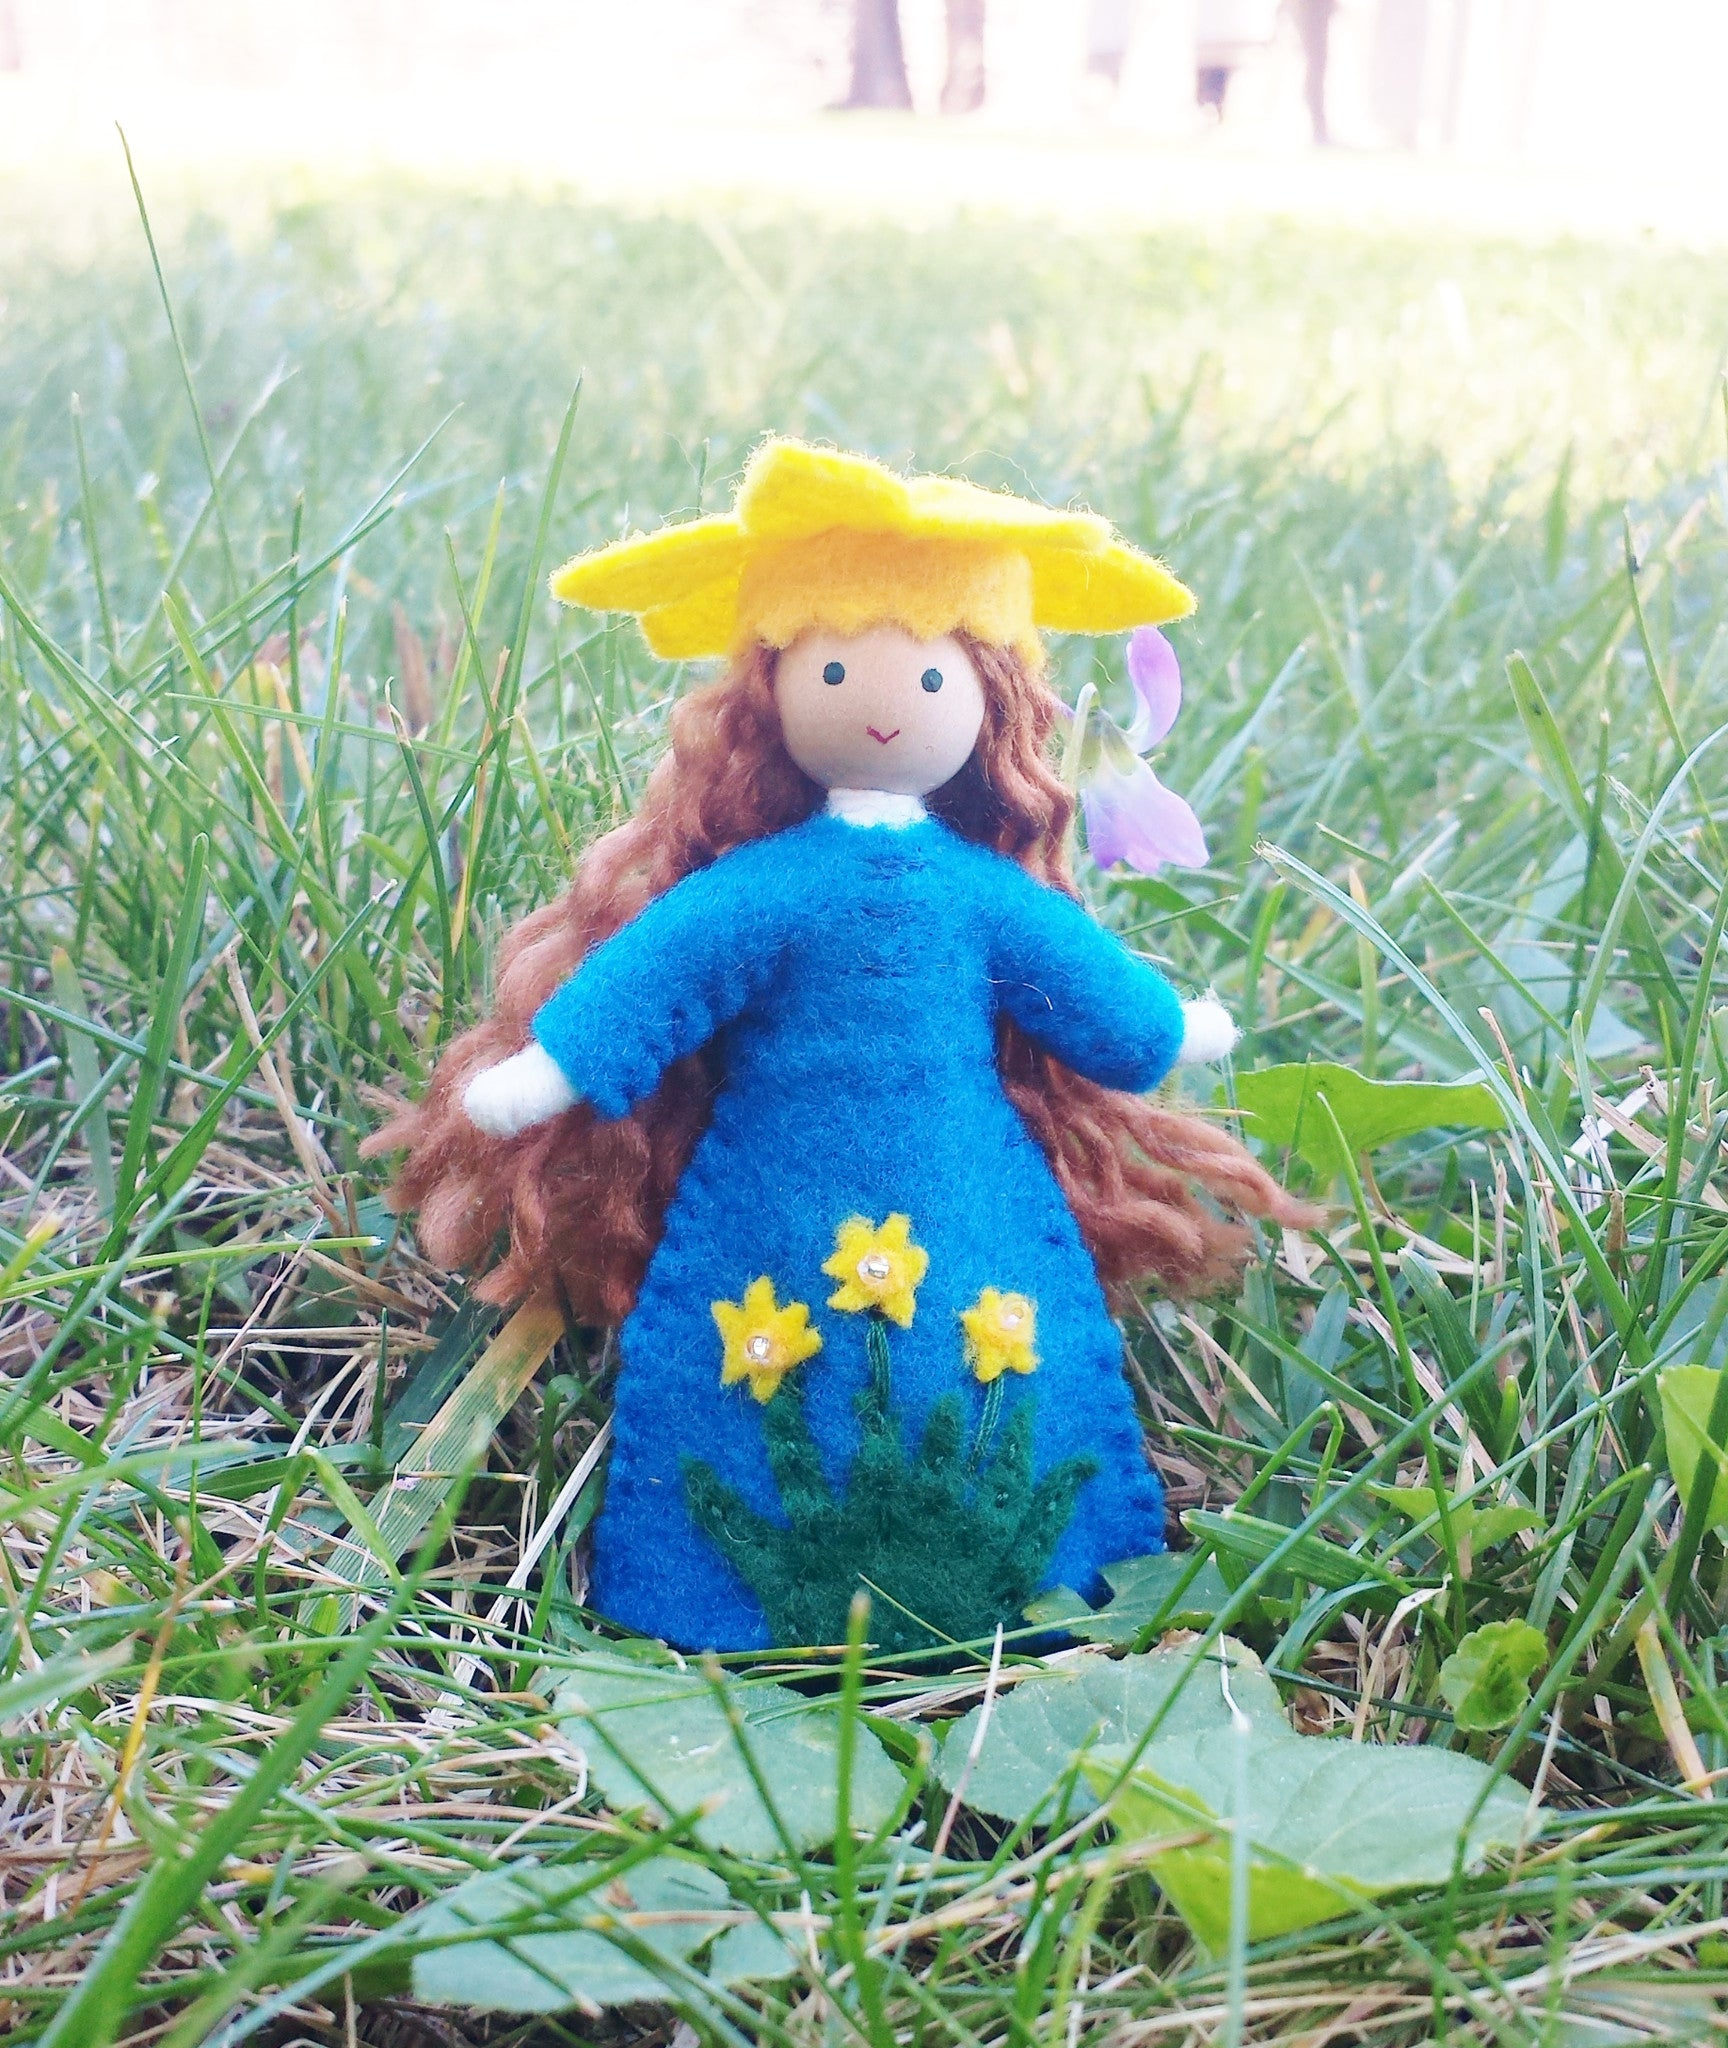 March Birthday Month Flower Doll - Daffodil - Handmade Miniature Waldorf Inspired Flower Fairy -Dollhouse Bendy Doll Wildflower Innocence